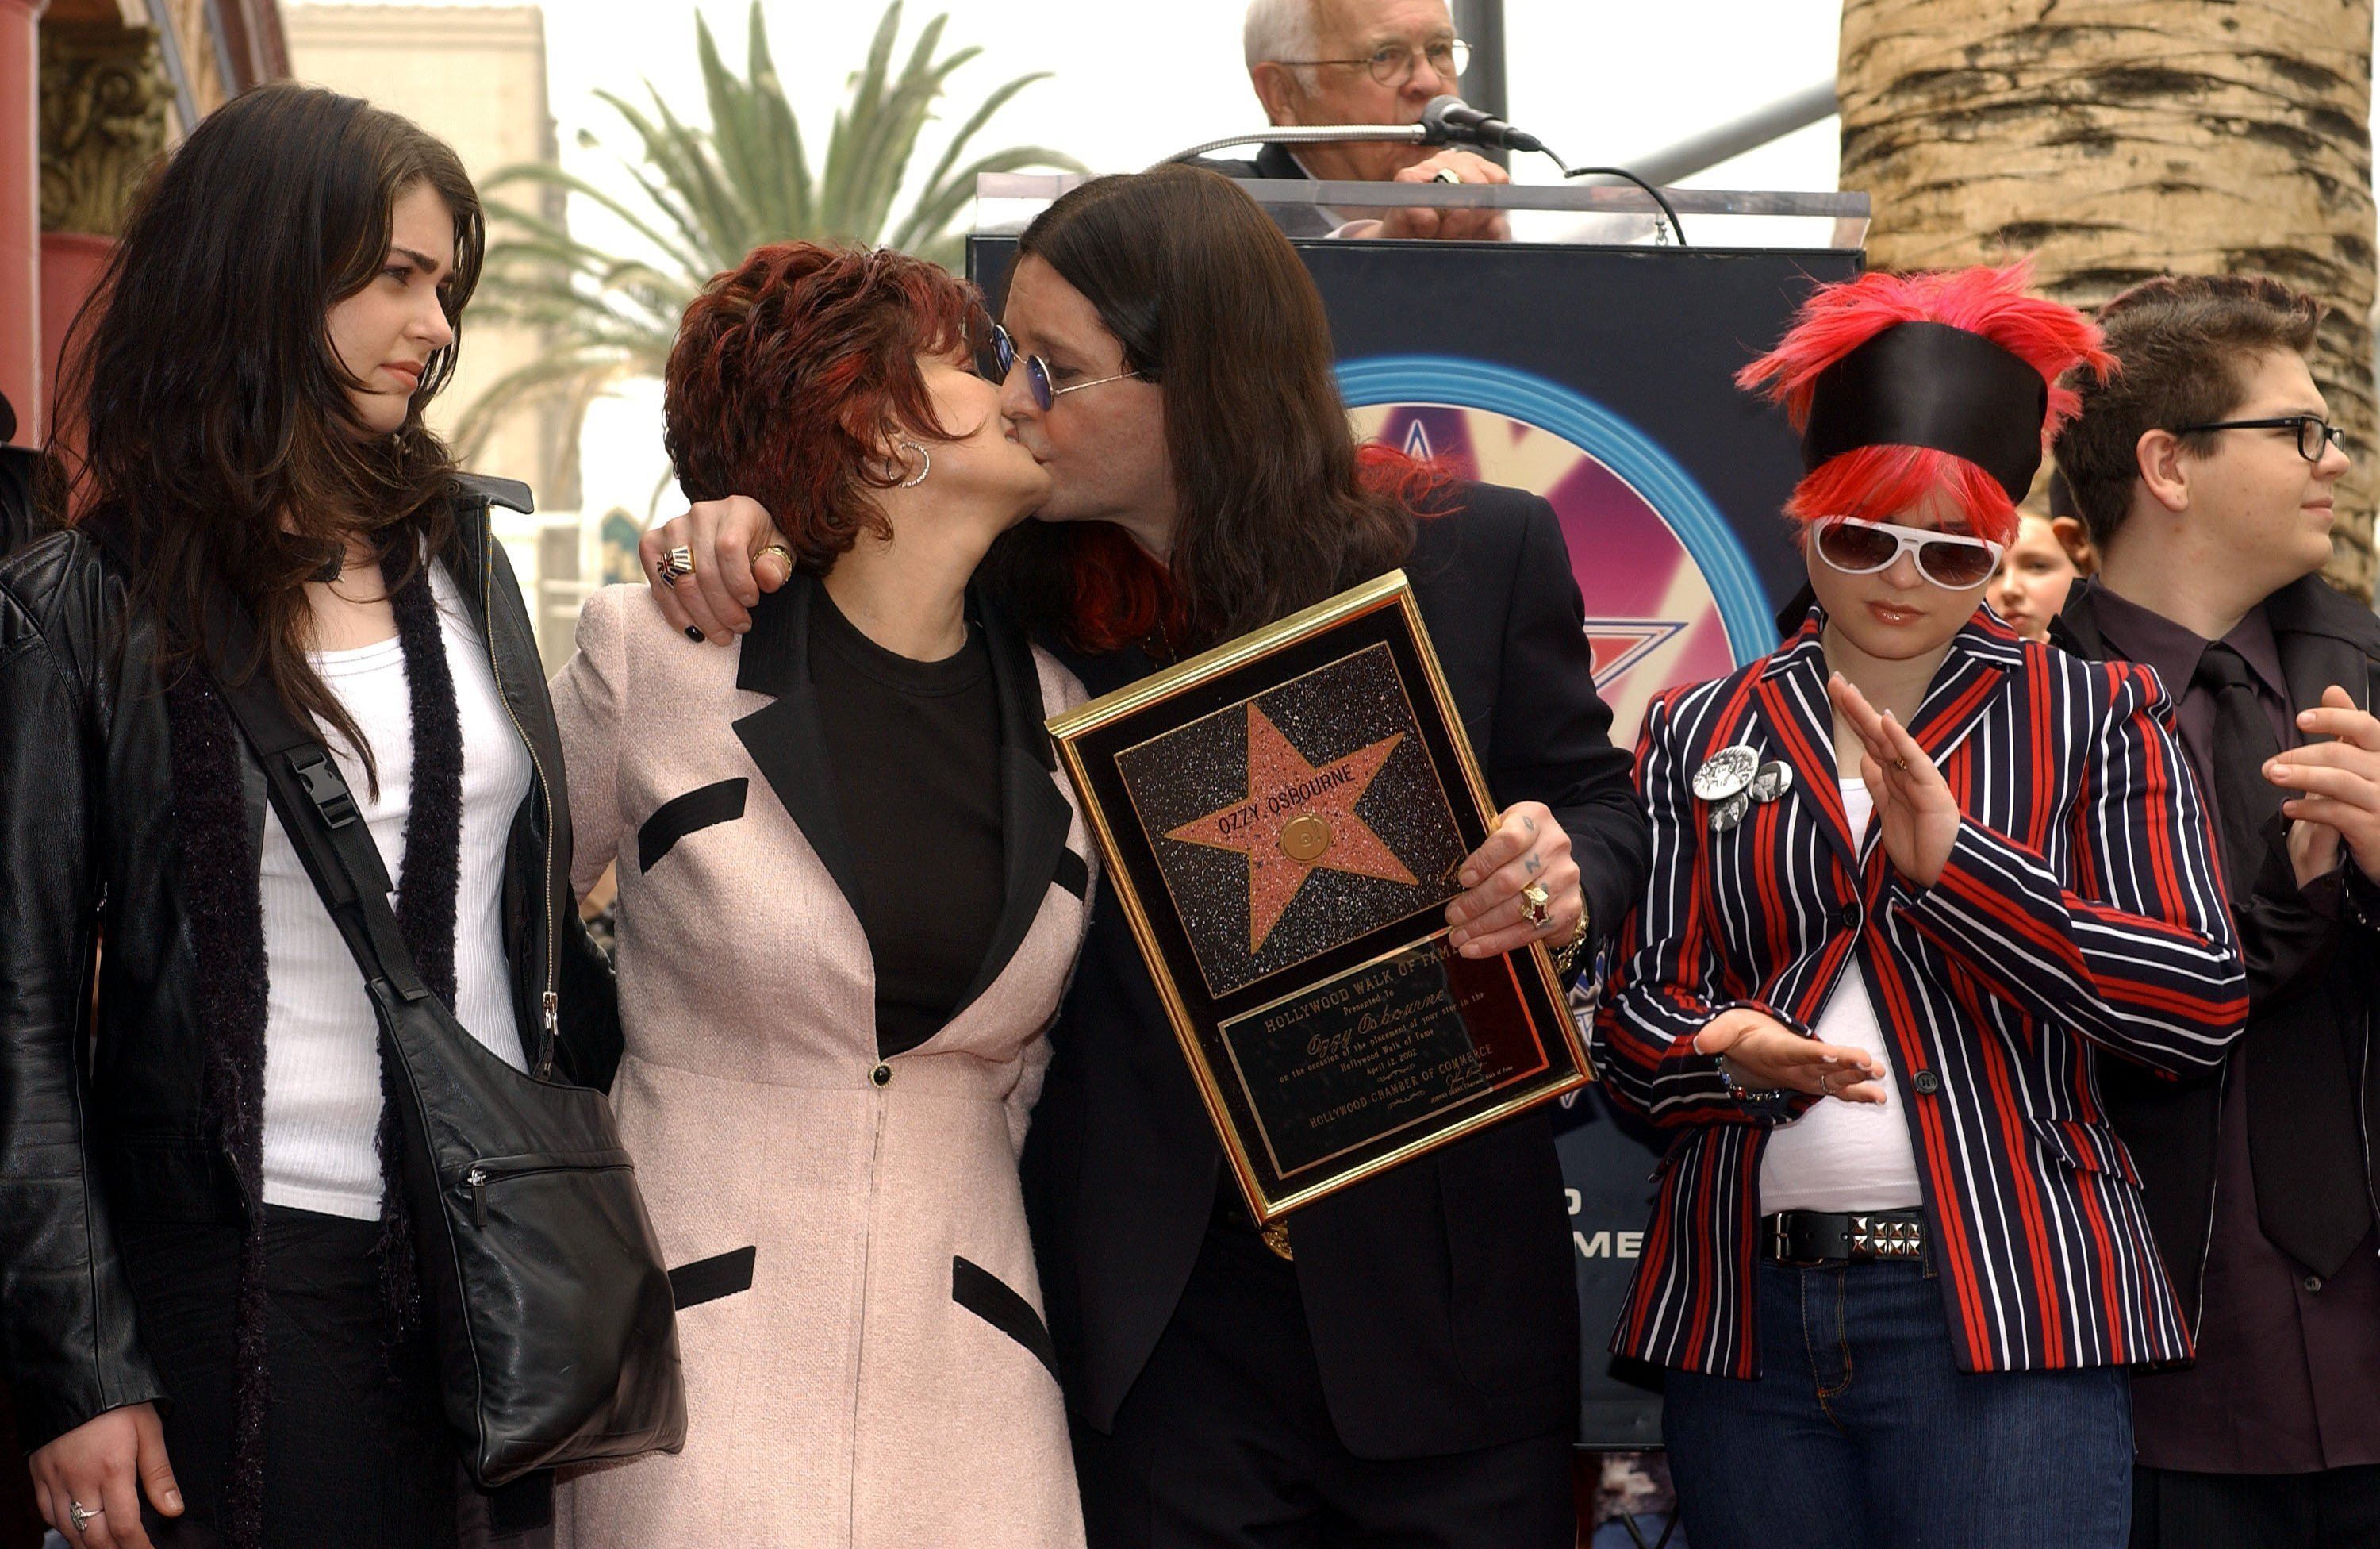 Ozzy Osbourne (C) kisses wife Sharon as daughters Aimee (L) and Kelly look on during the ceremony honoring him with a star on the Hollywood Walk of Fame | Source: Getty Images